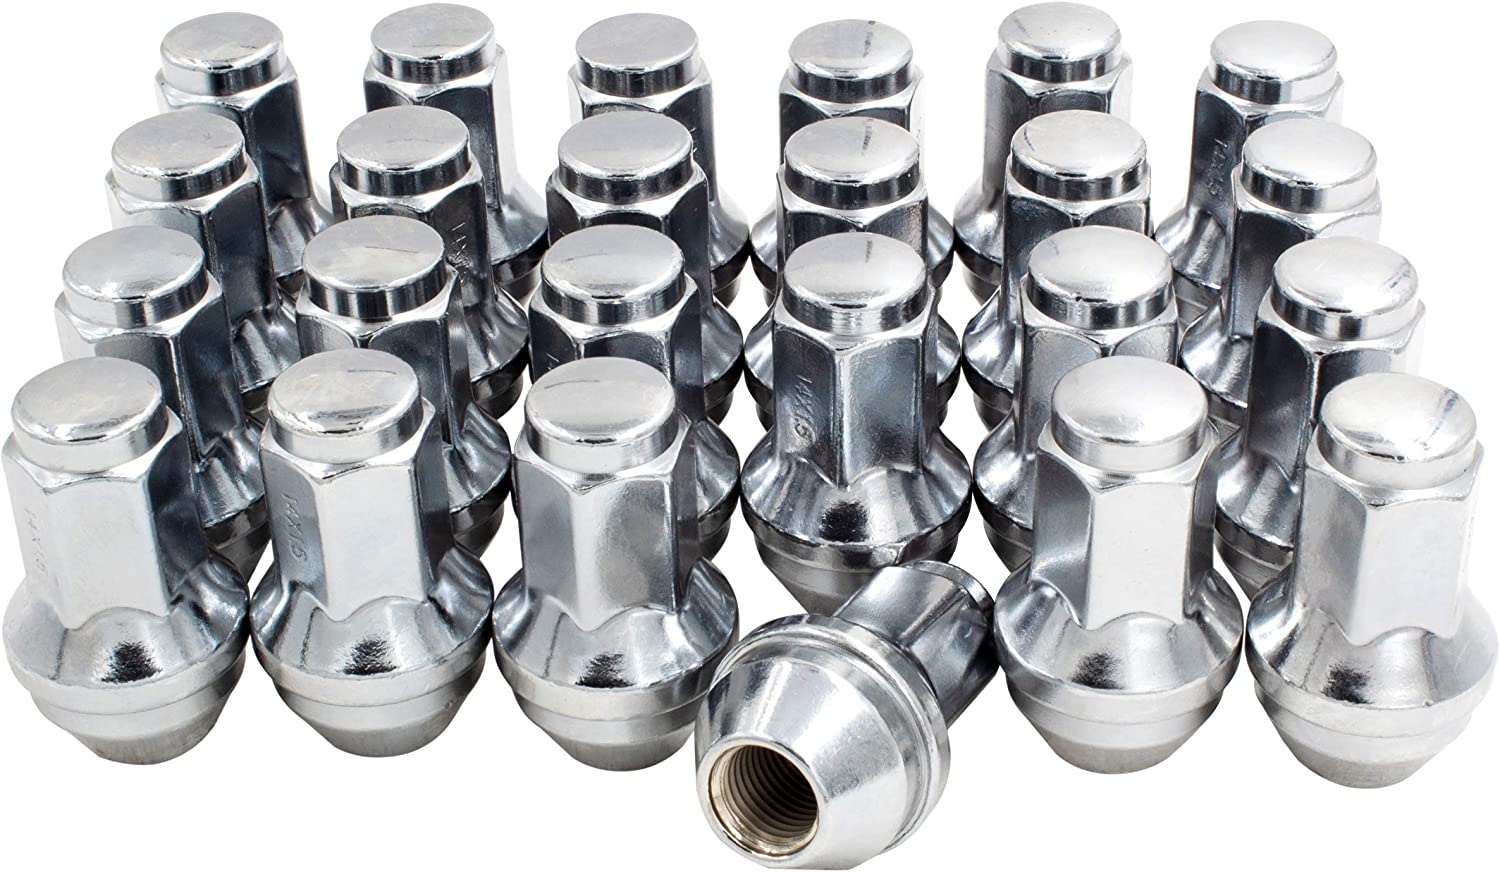 Buyer Needs to Review The spec 20pcs 2.32 Chrome M14 X 2 Wheel Lug Nuts fit 2007 Lincoln Mark LT May Fit OEM Rims